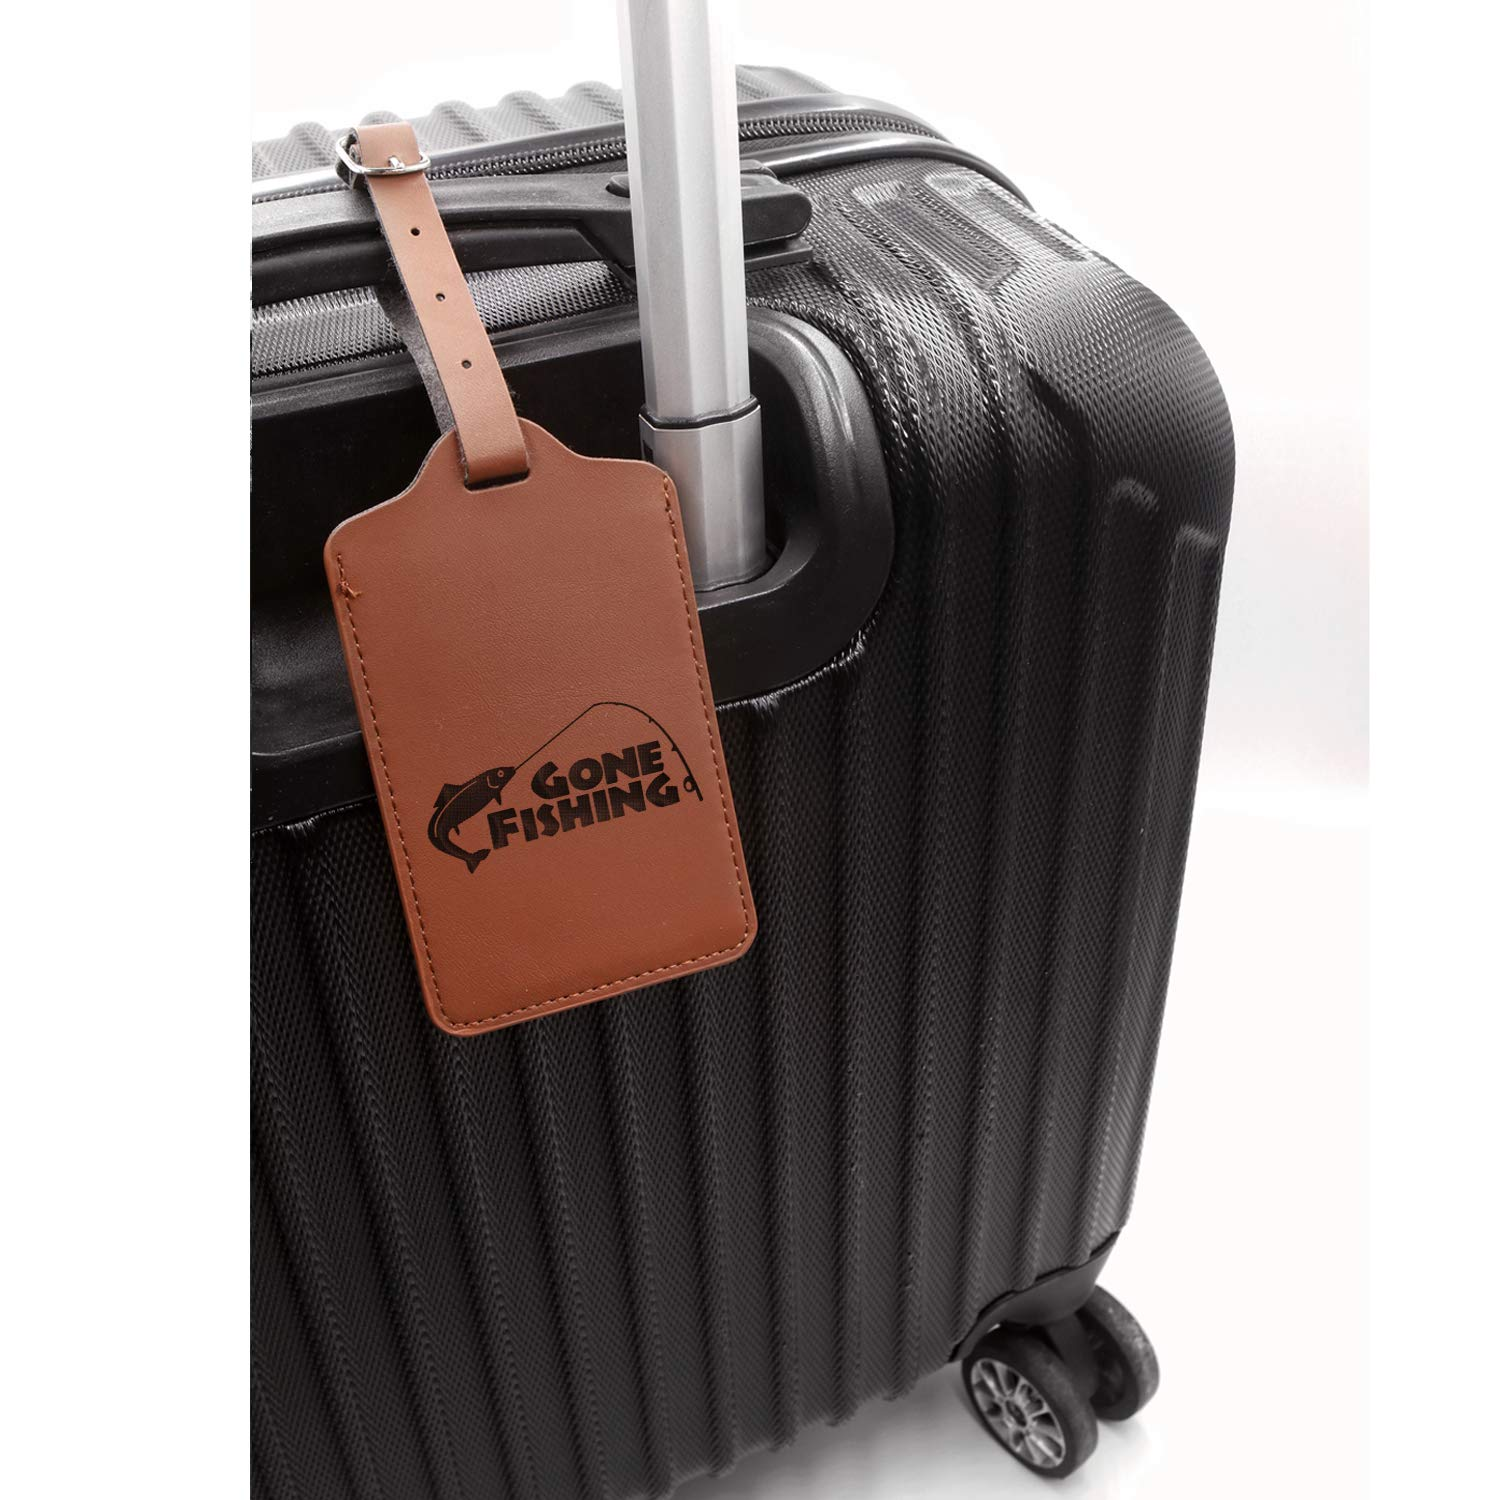 Gone Fishing Comic Engraved Synthetic Pu Leather Luggage Tag London Tan - Set Of 2 - United States Standard For Any Type Of Luggage Handcrafted By Mastercraftsmen